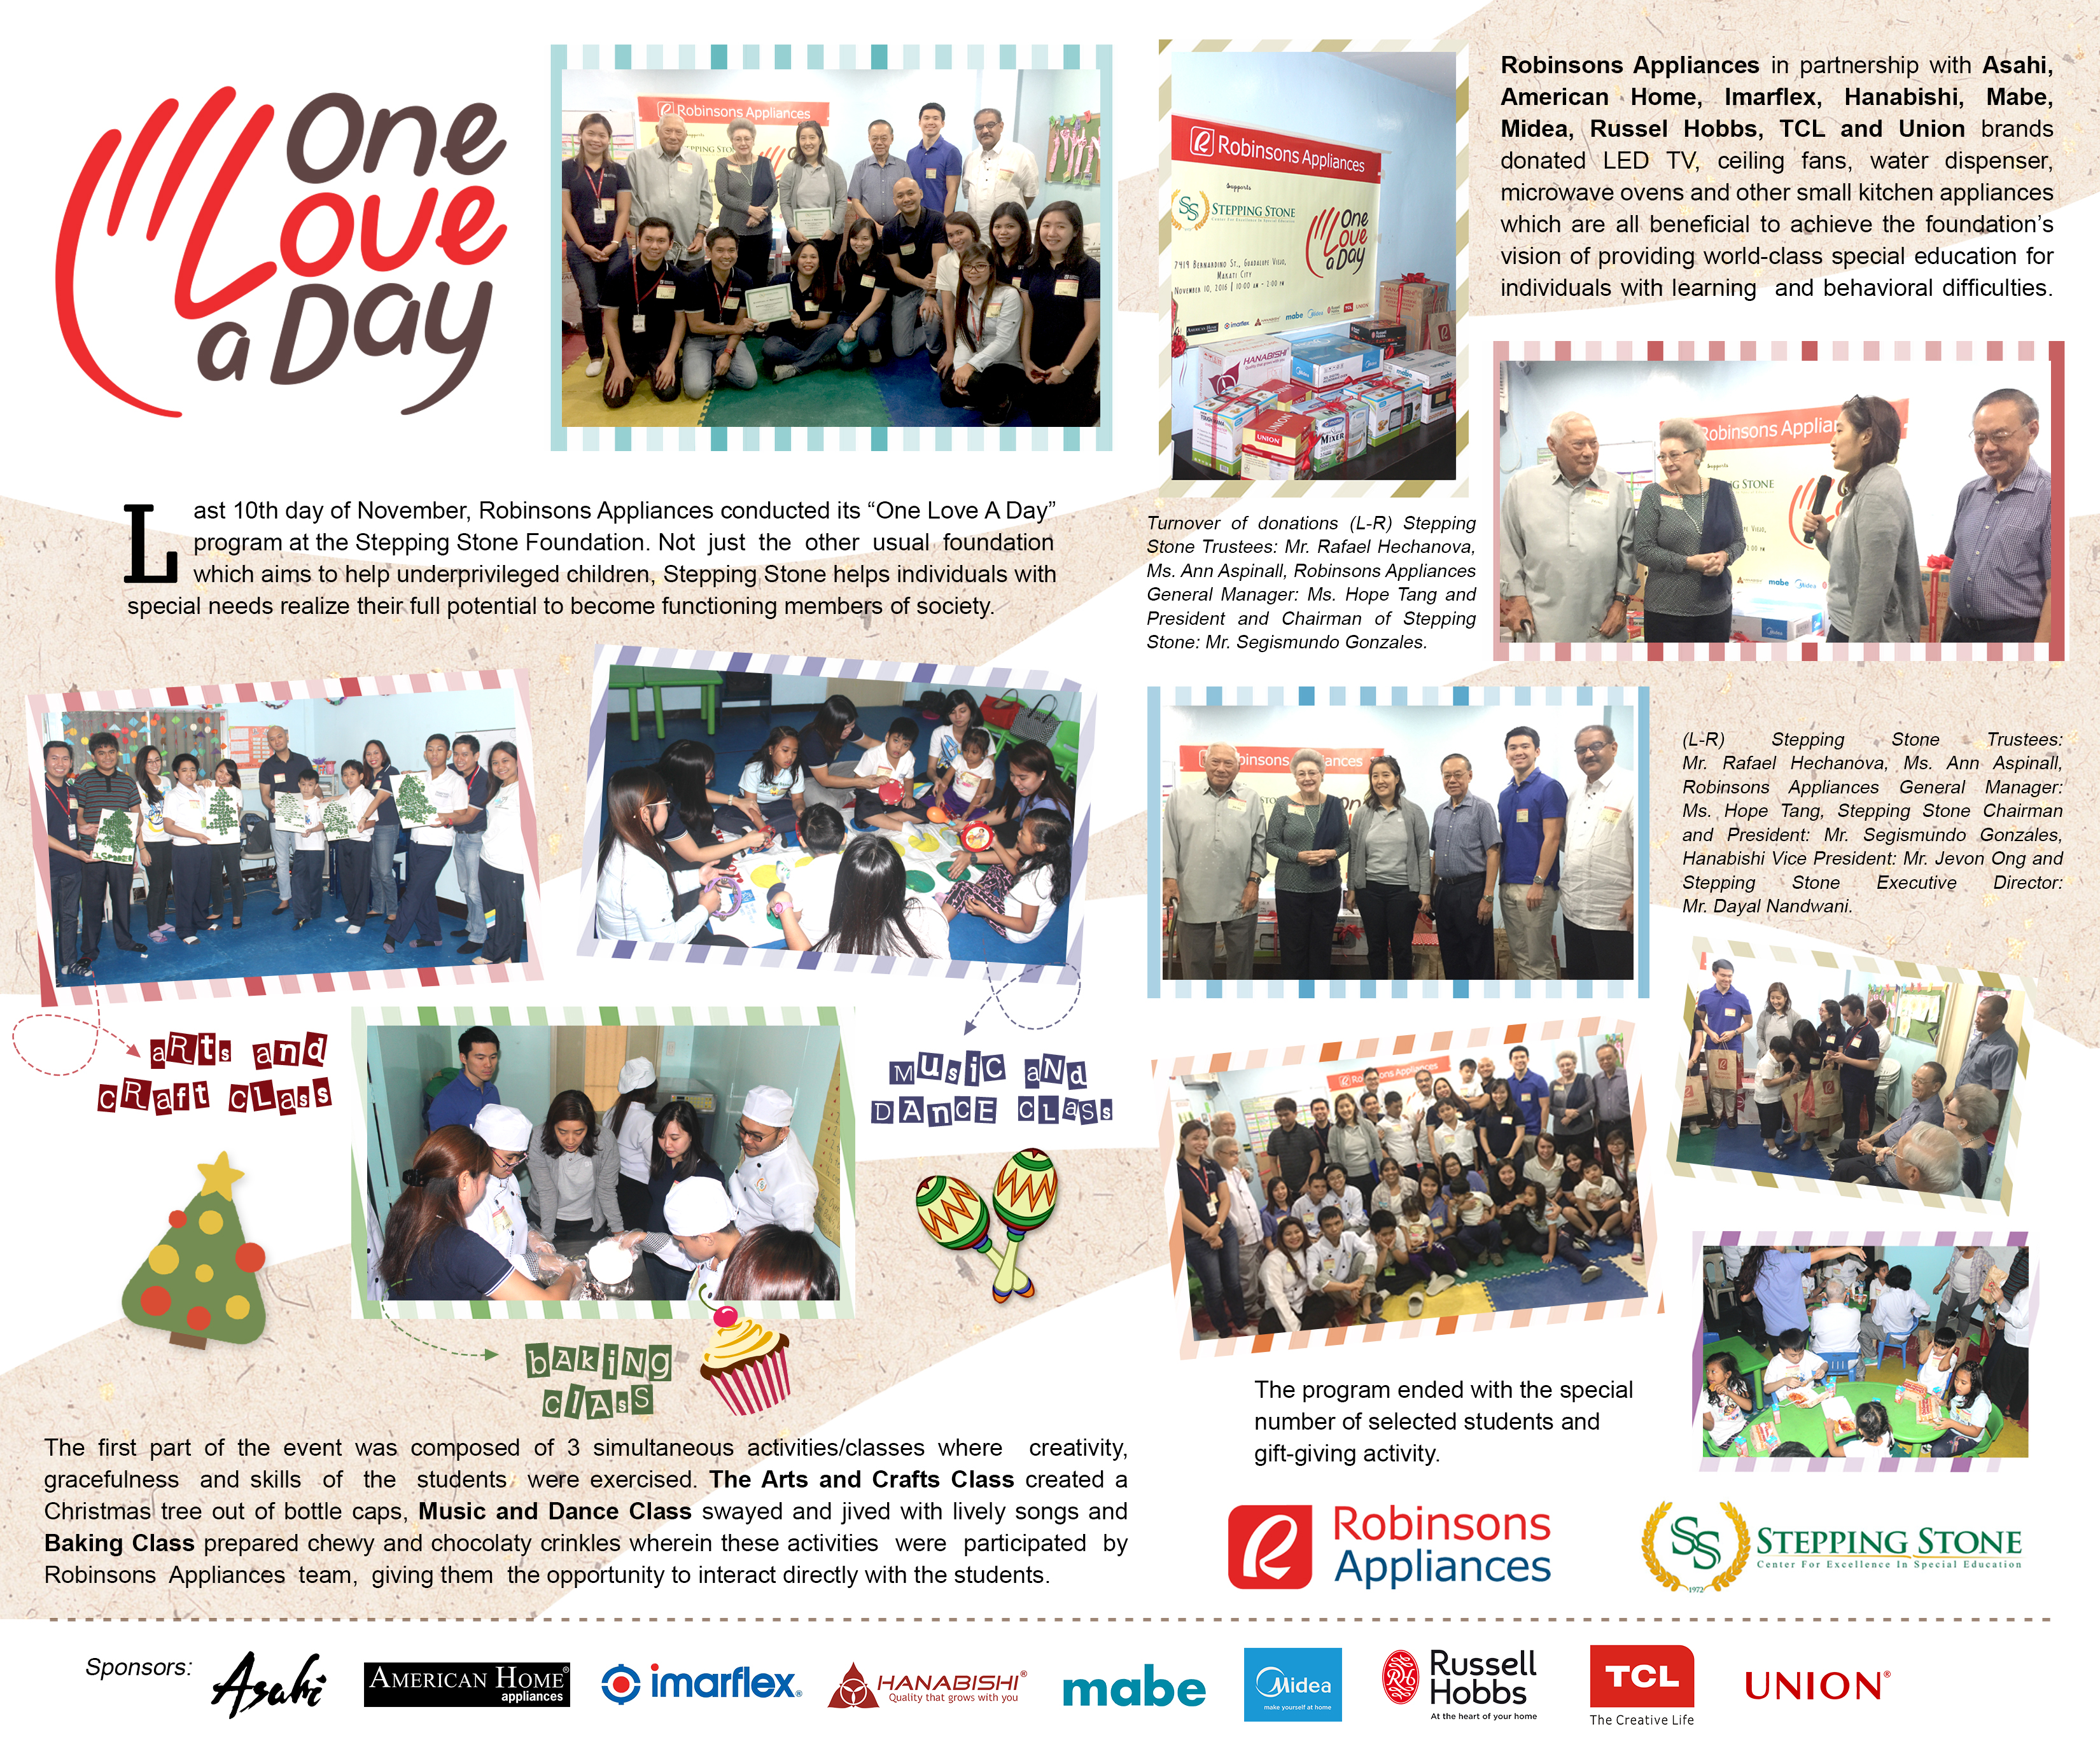 Robinsons Appliances' One Love A Day